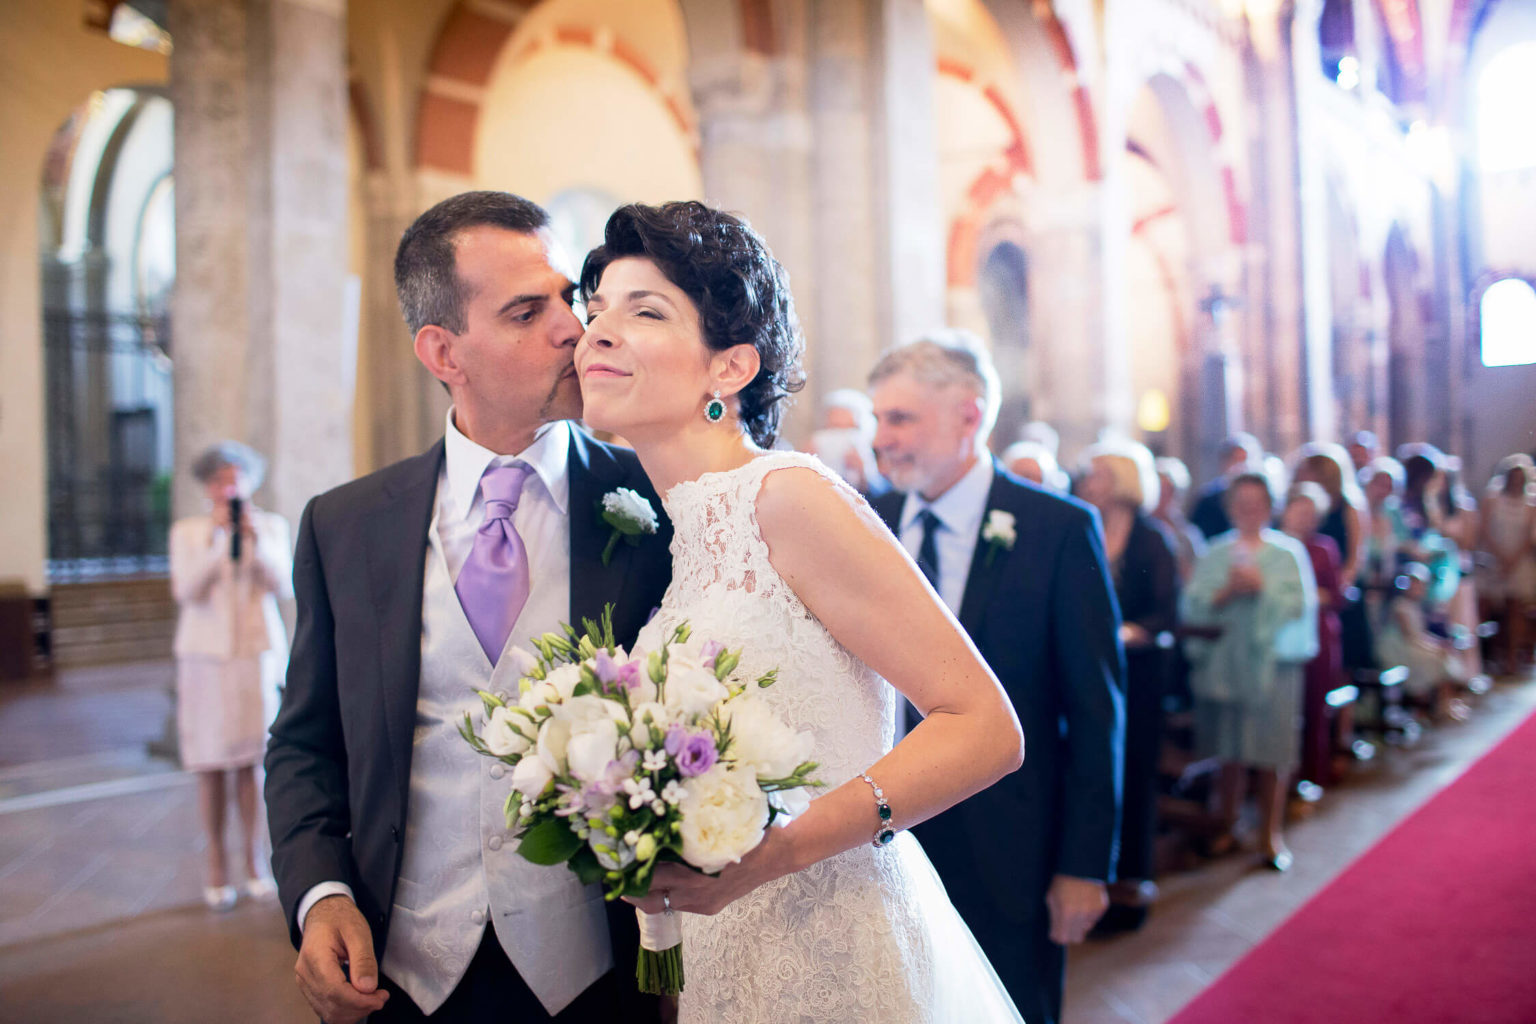 Bride happy to receive a kiss from her husband at the Basilica of Sant'Ambrogio in Milan, wedding photo by Nino Lombardo